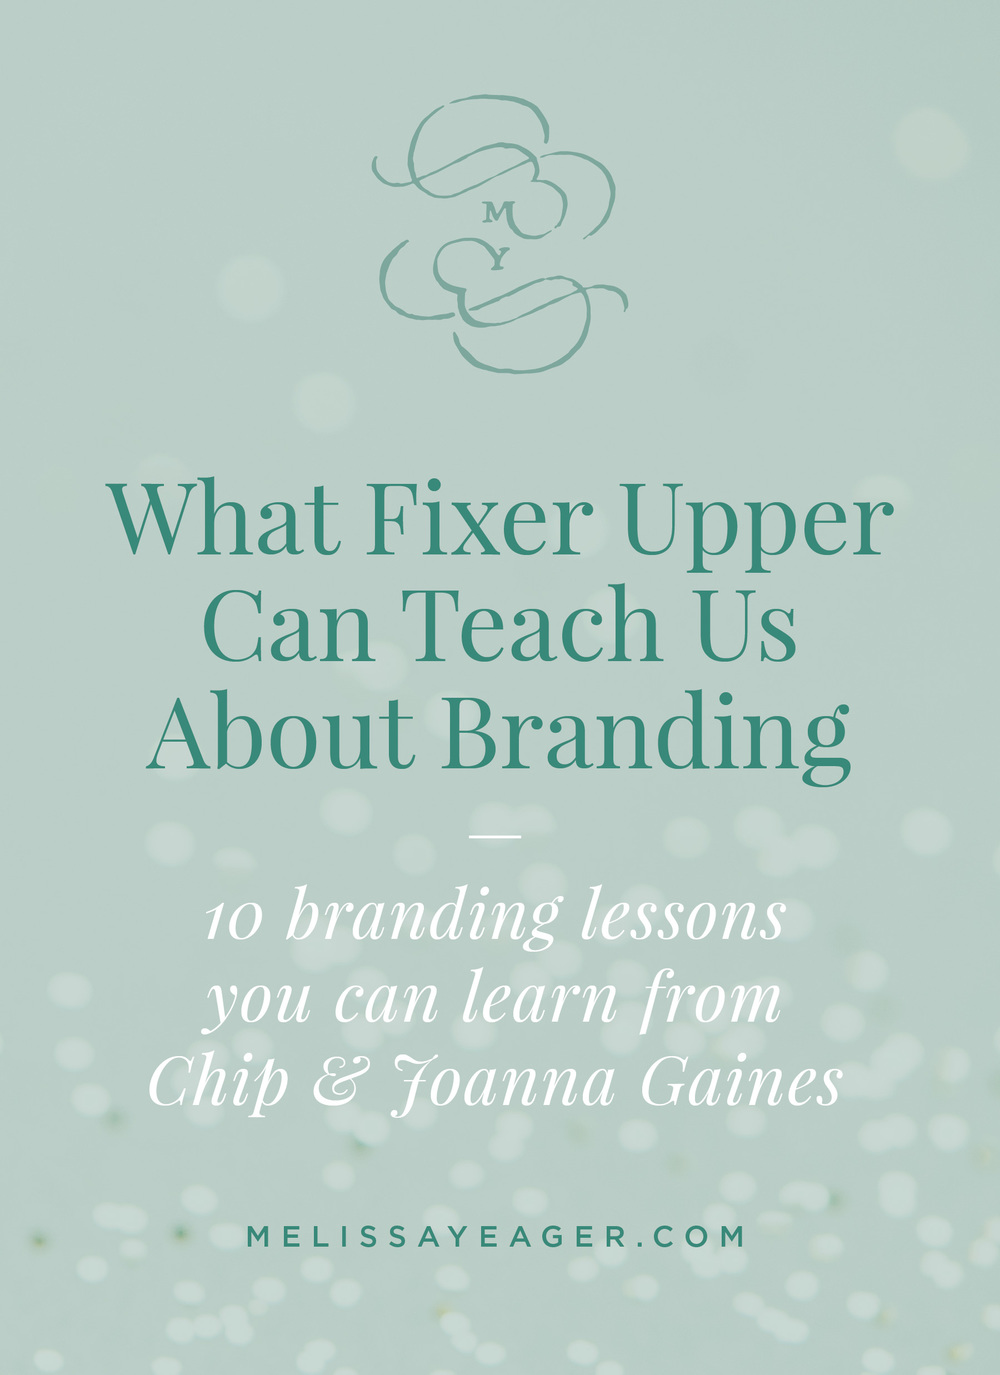 What Fixer Upper Can Teach Us About Branding - 10 branding lessons you can learn from Chip & Joanna Gaines